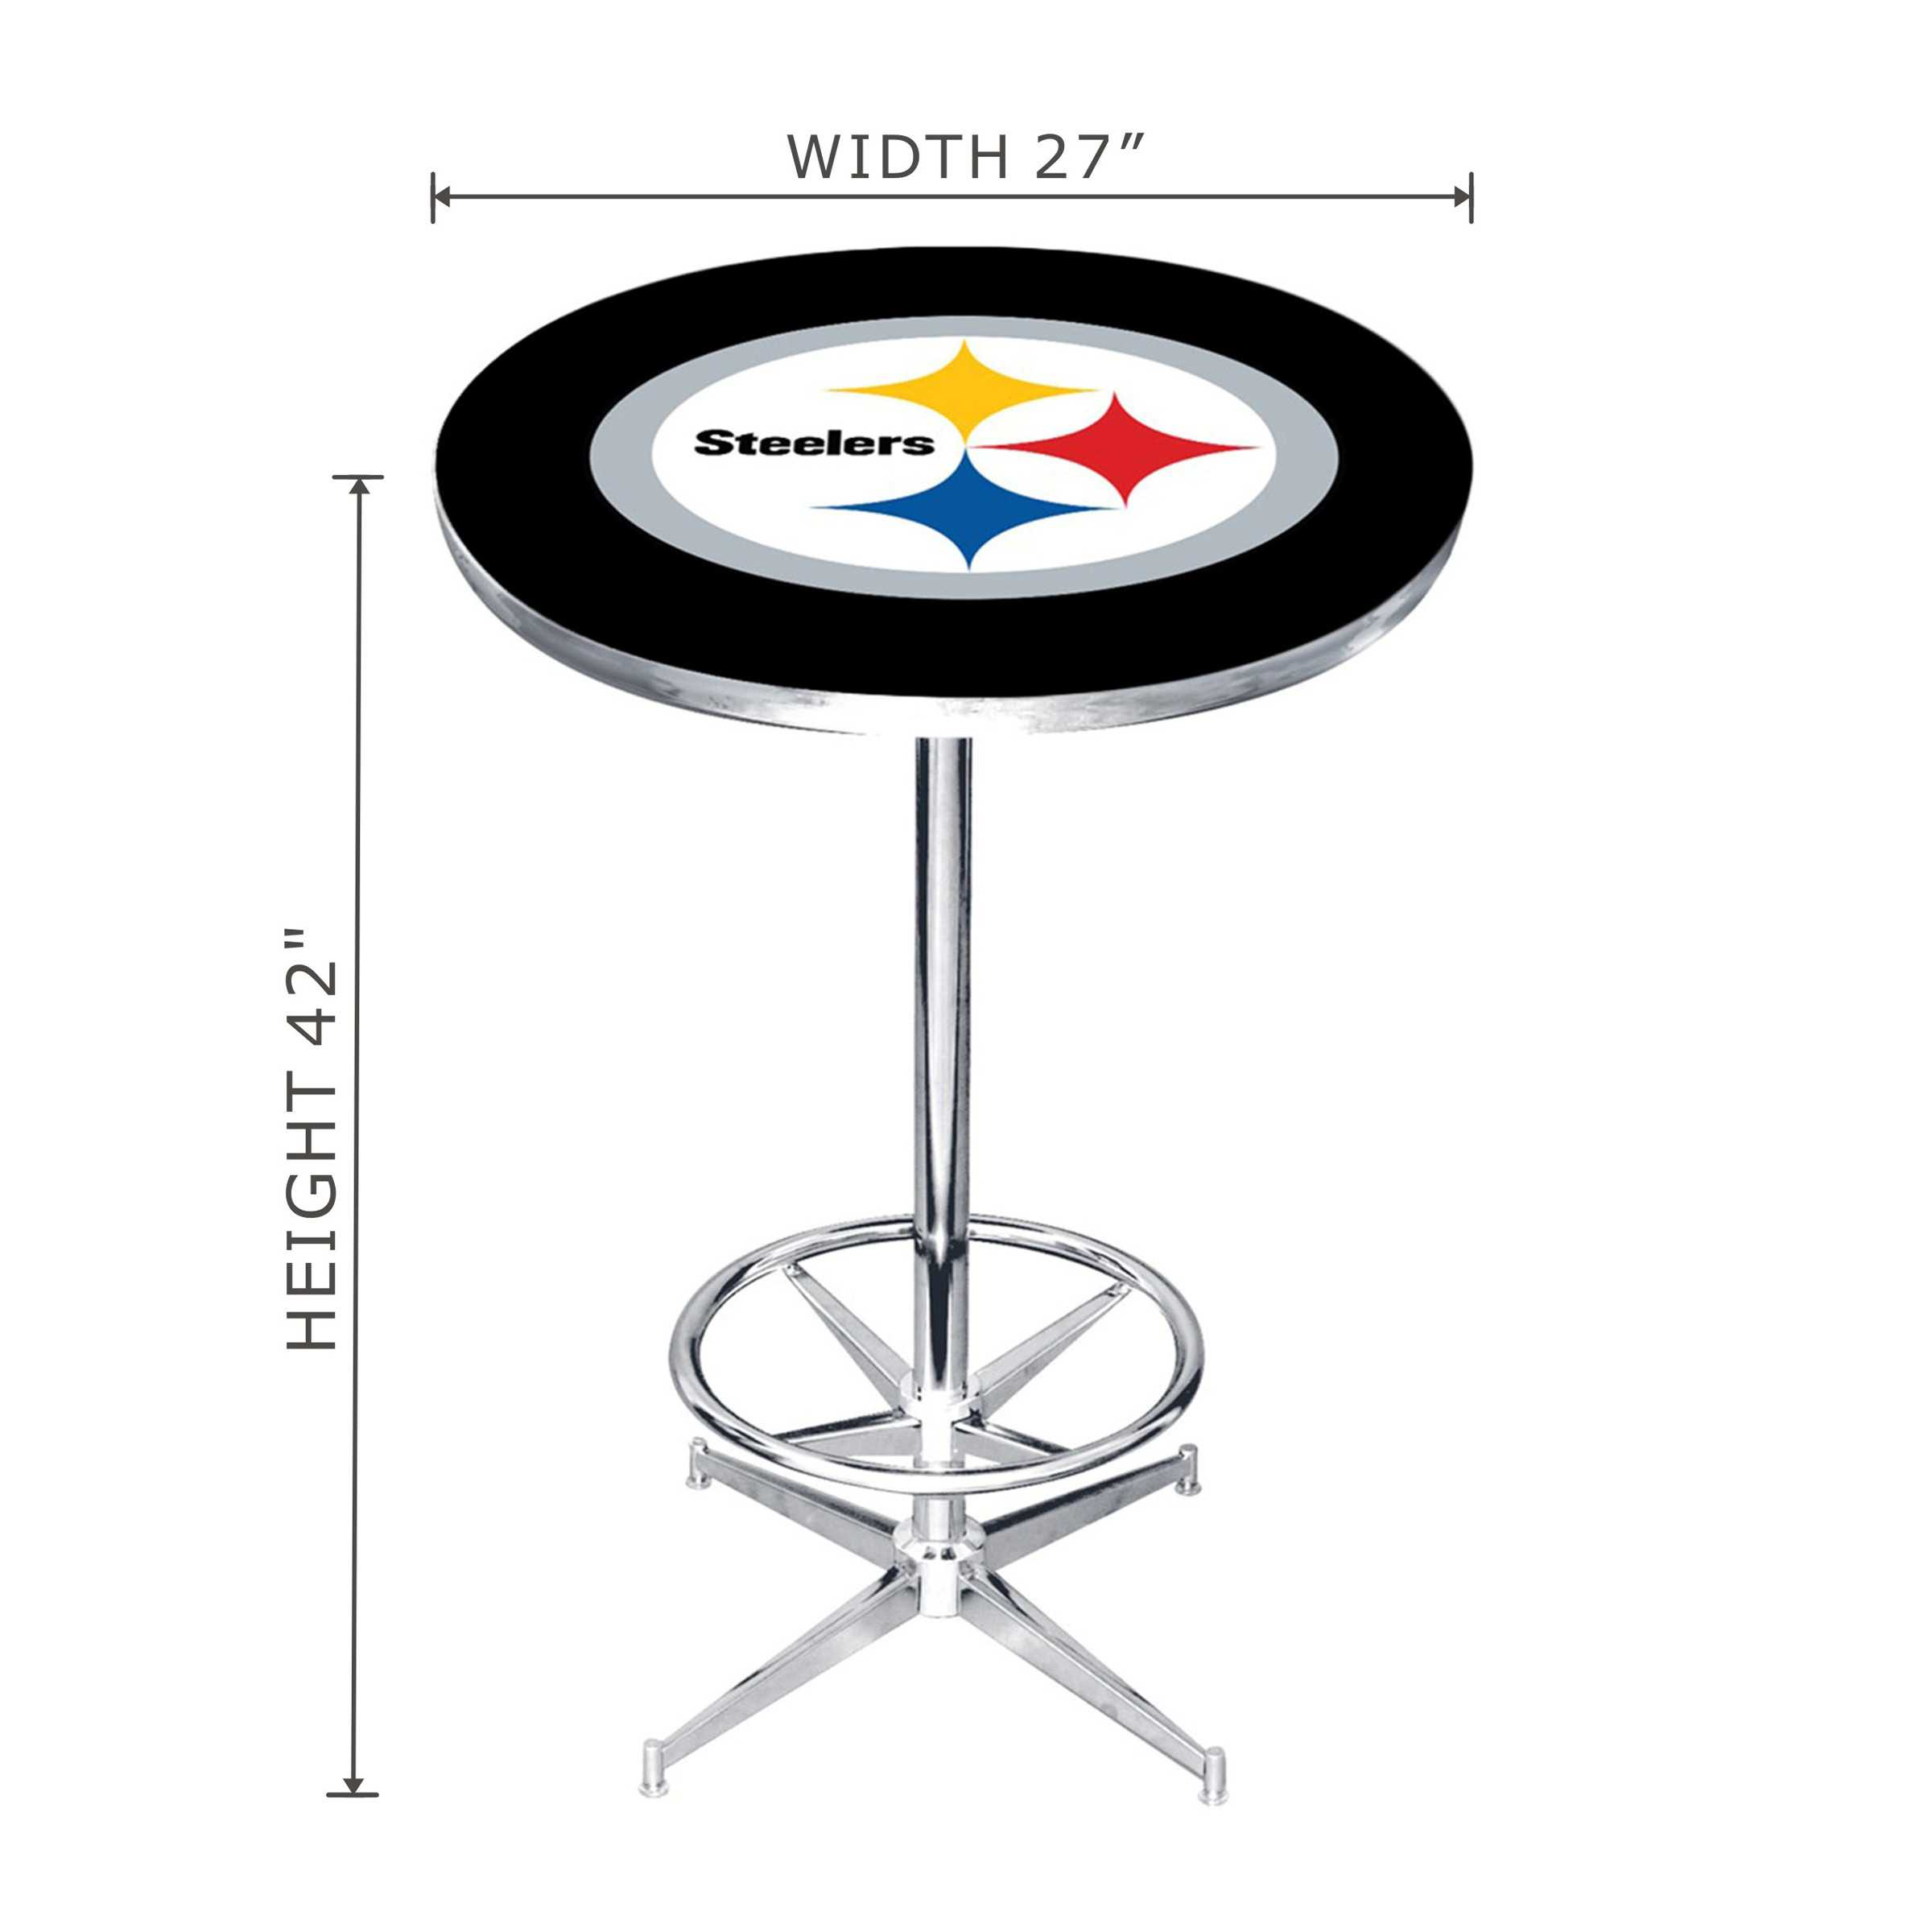 PITTS STEELERS PUB TABLE